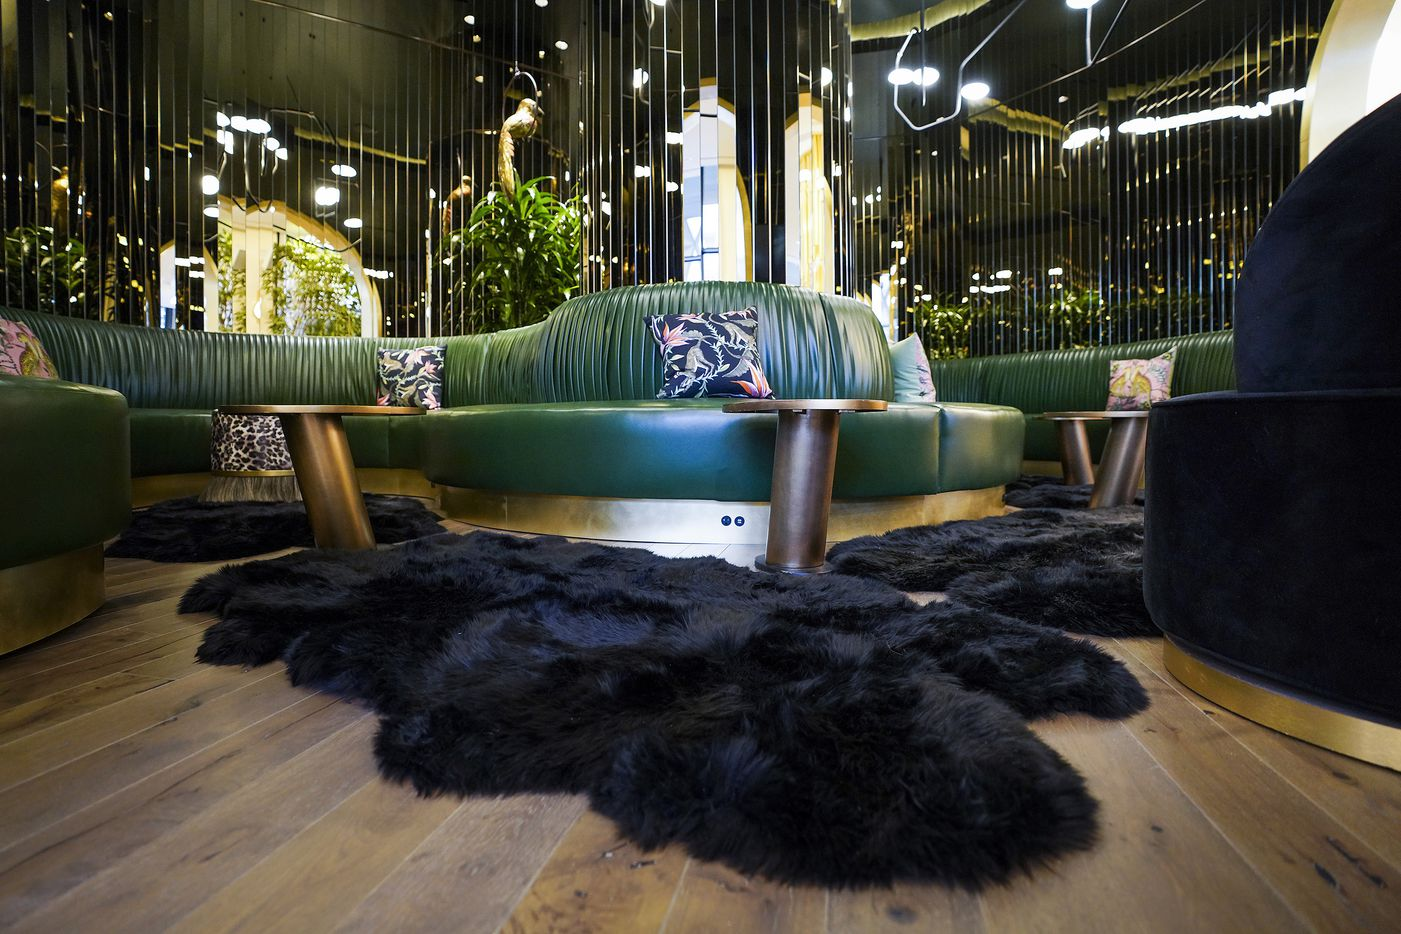 Shag Room in the Commons Club at the new the Virgin Hotels Dallas on Monday, Dec. 16, 2019, in Dallas. The newly built hotel is at 1445 Turtle Creek in the Dallas Design District.